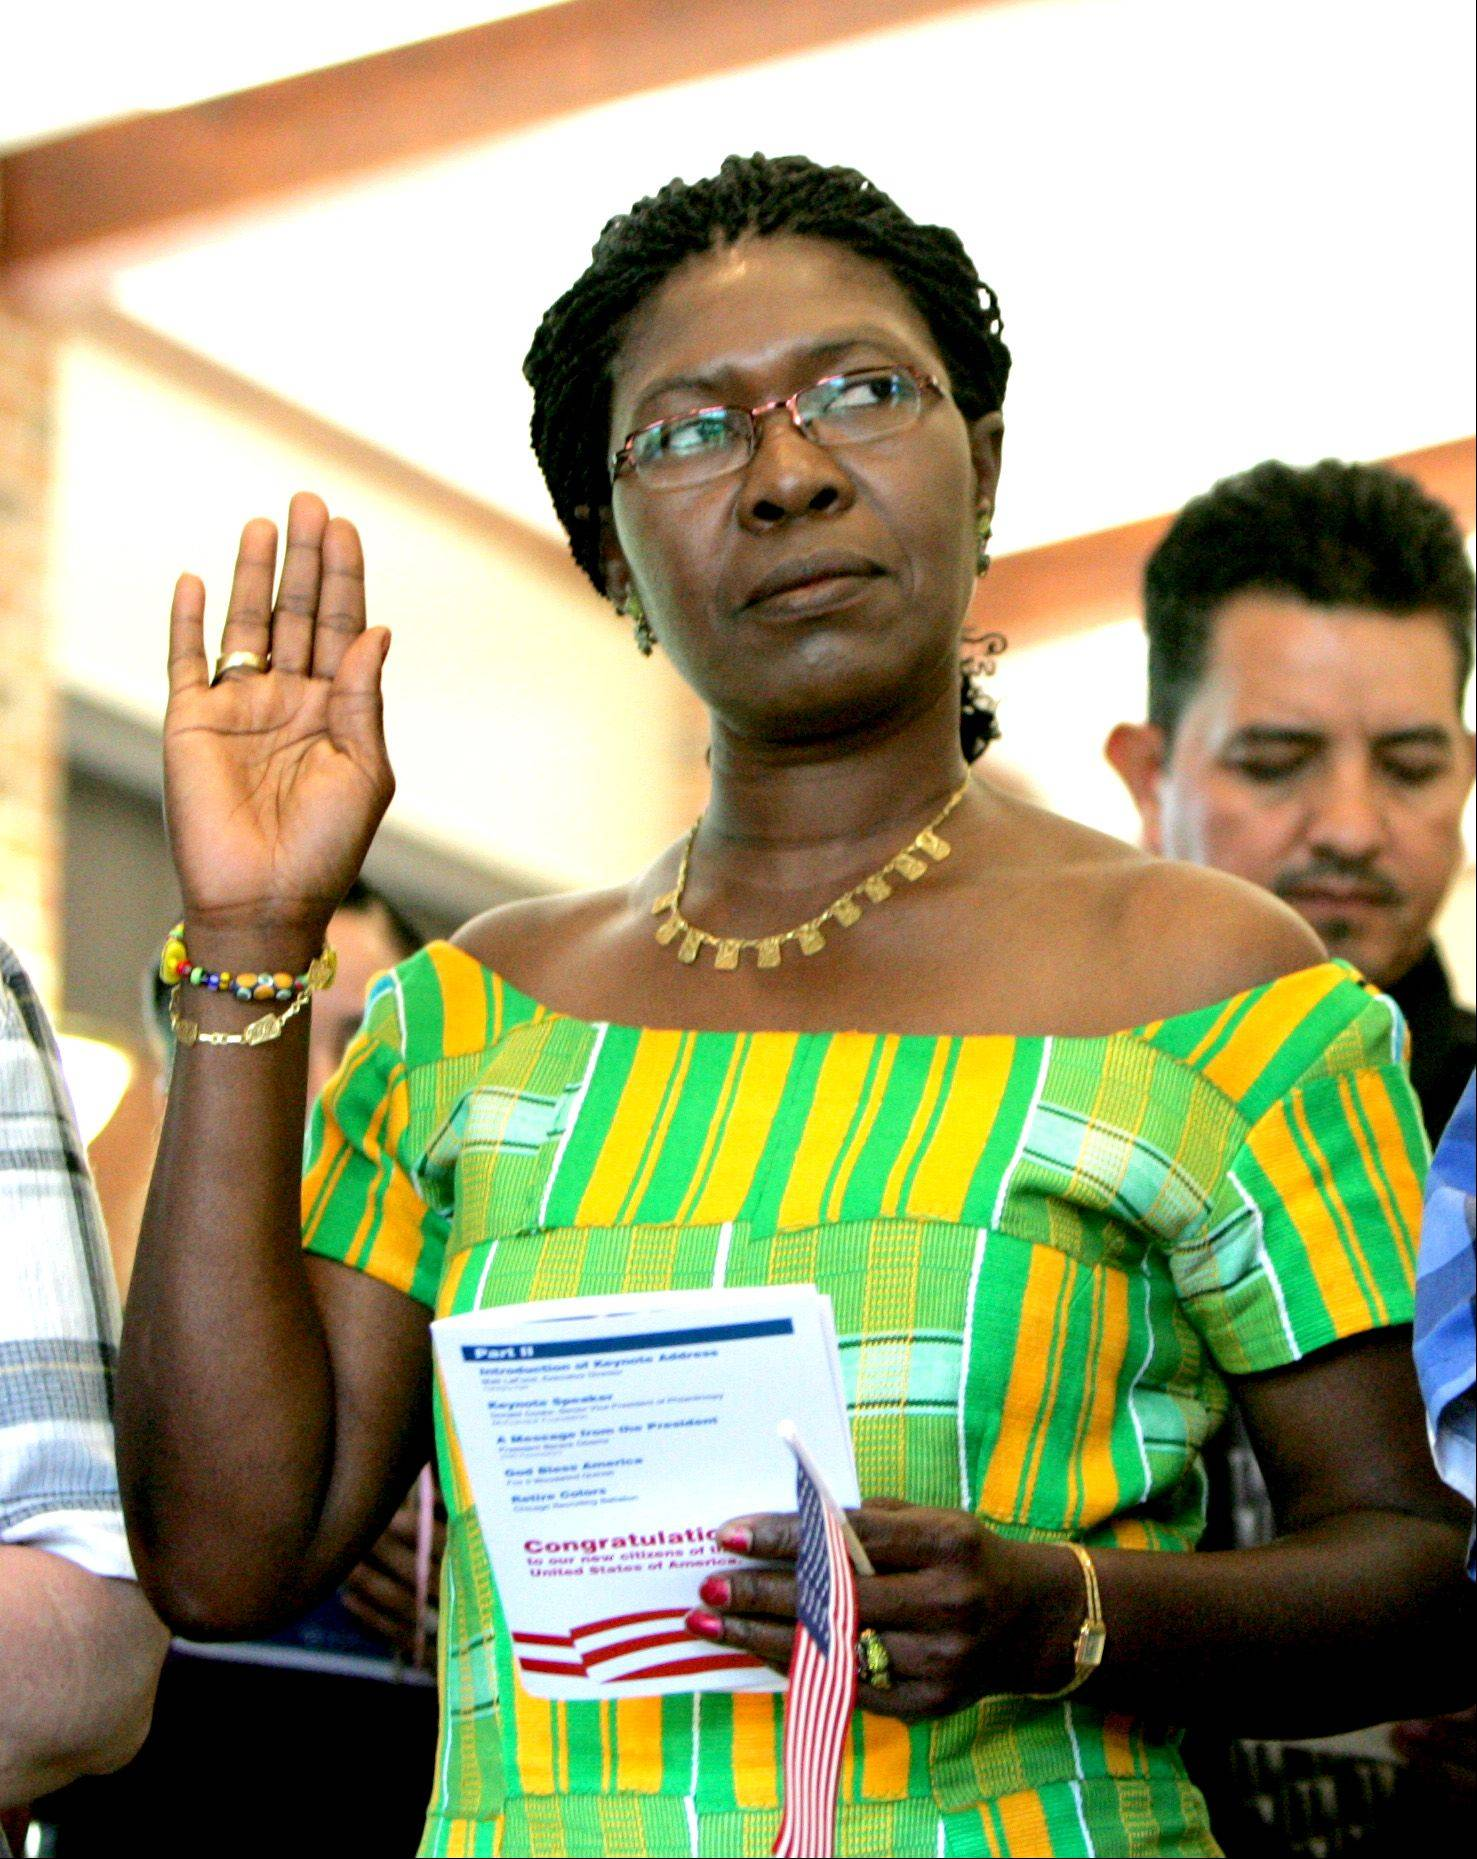 Augusta Kportufe, originally from Ghana, takes her oath of allegiance Thursday during a citizenship ceremony at Cantigny Park in Wheaton. A total of 94 people from 34 countries became U.S. citizens.